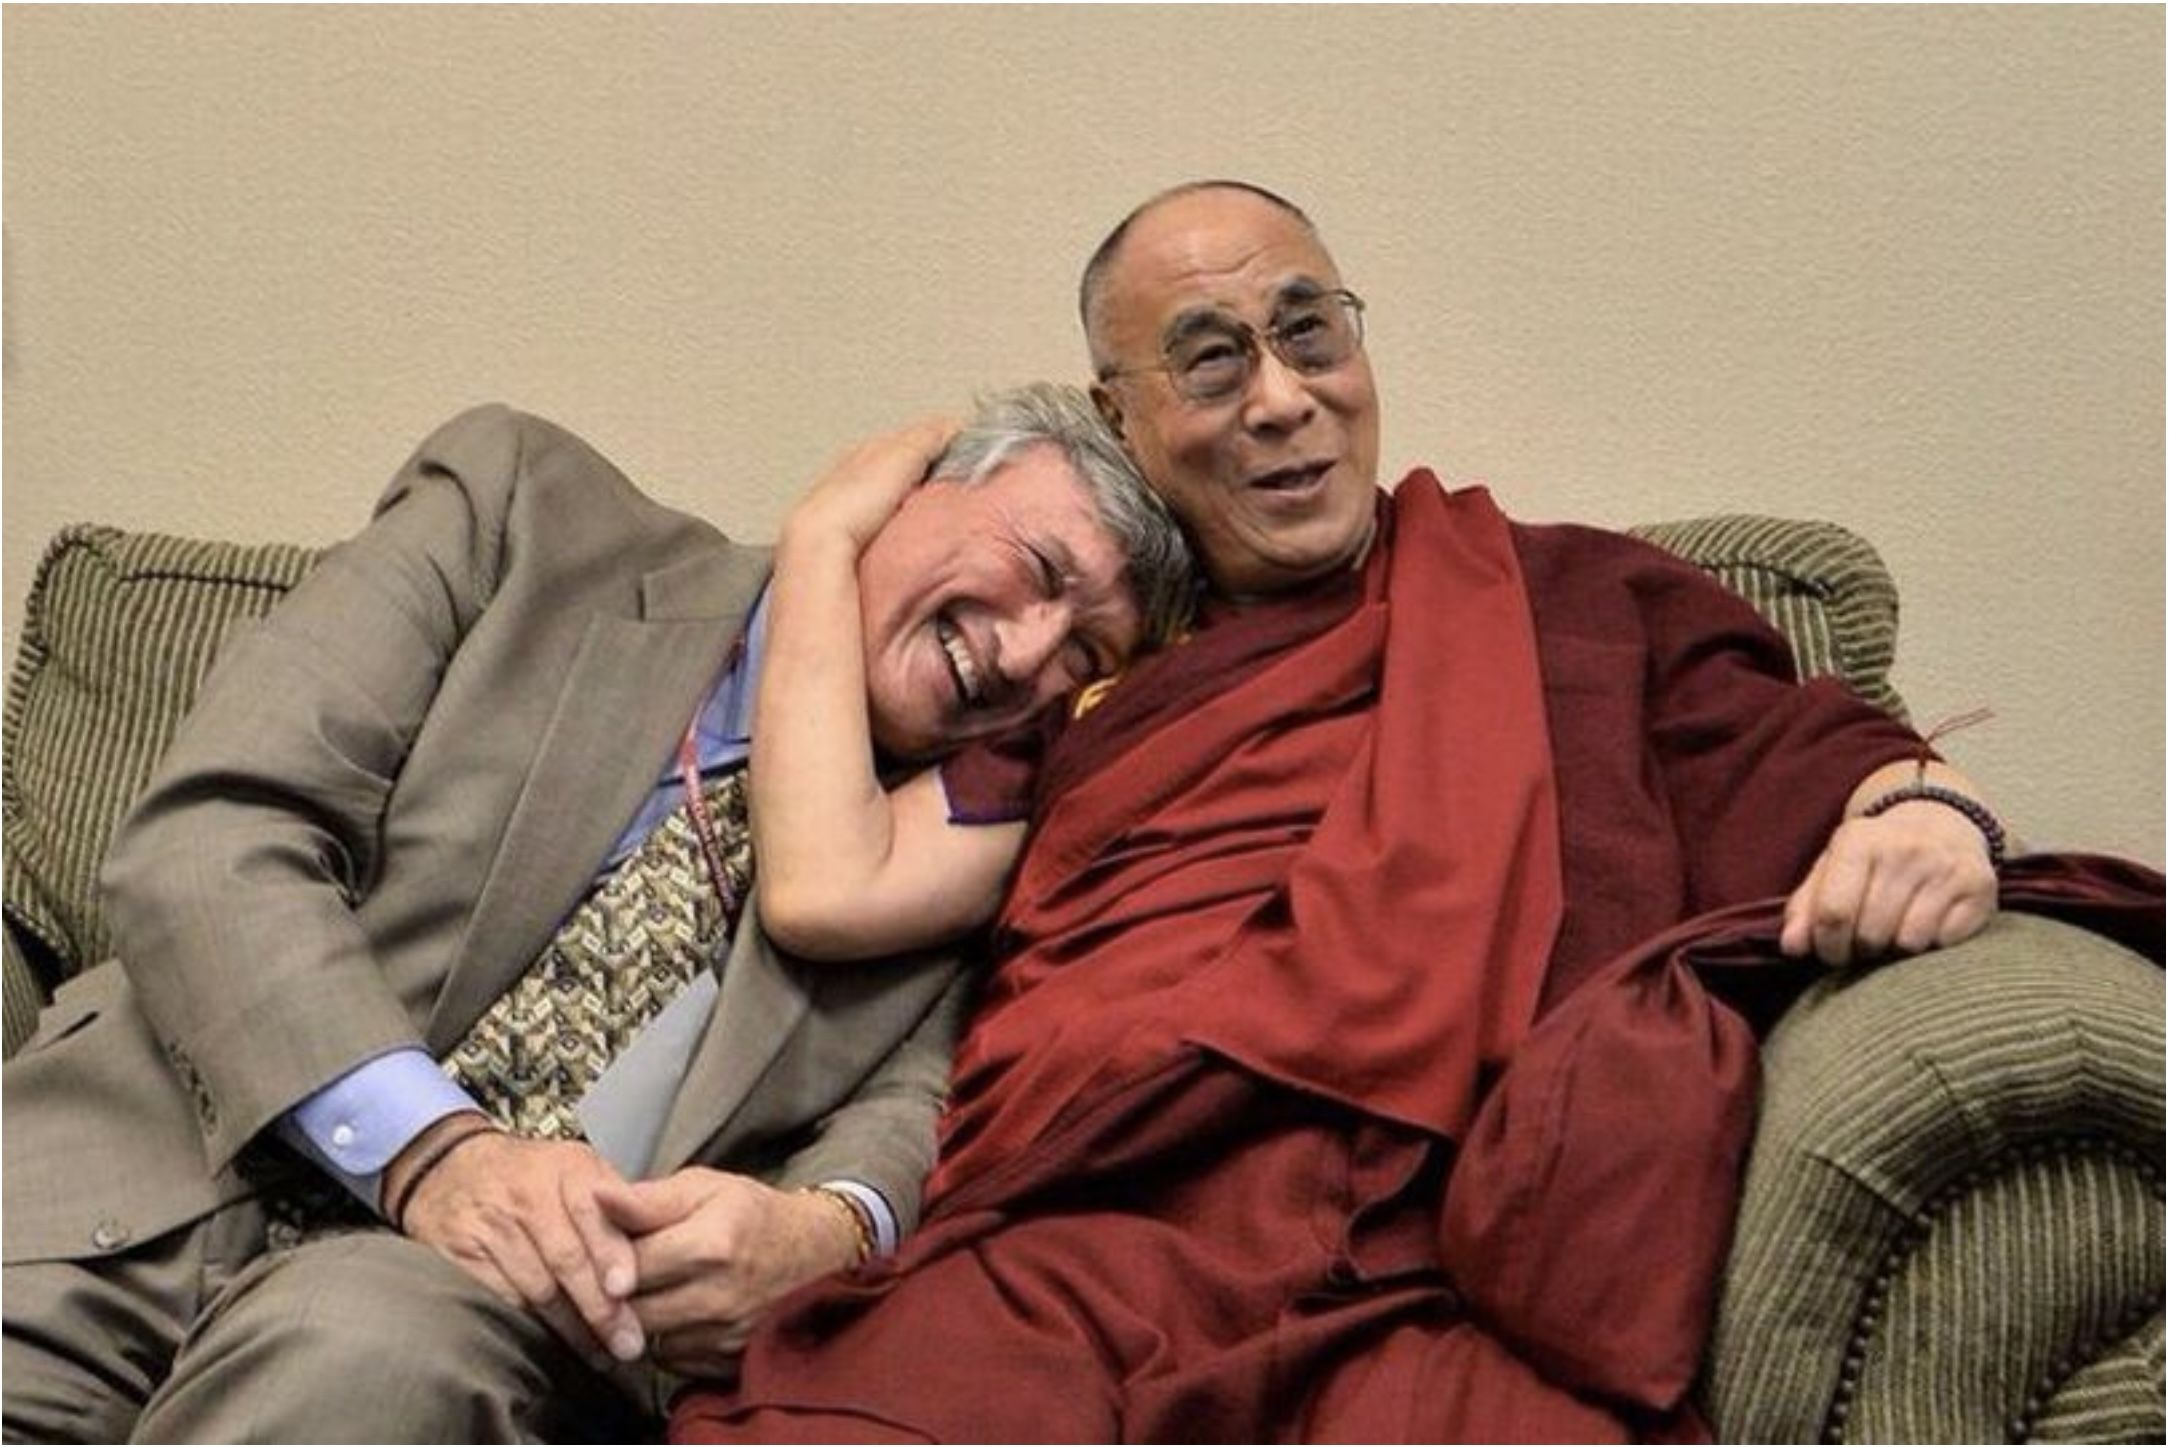 FRIENDS: Dr Jim Doty with the Dalai Lama – Jim says science has proved the benefits of mindfulness